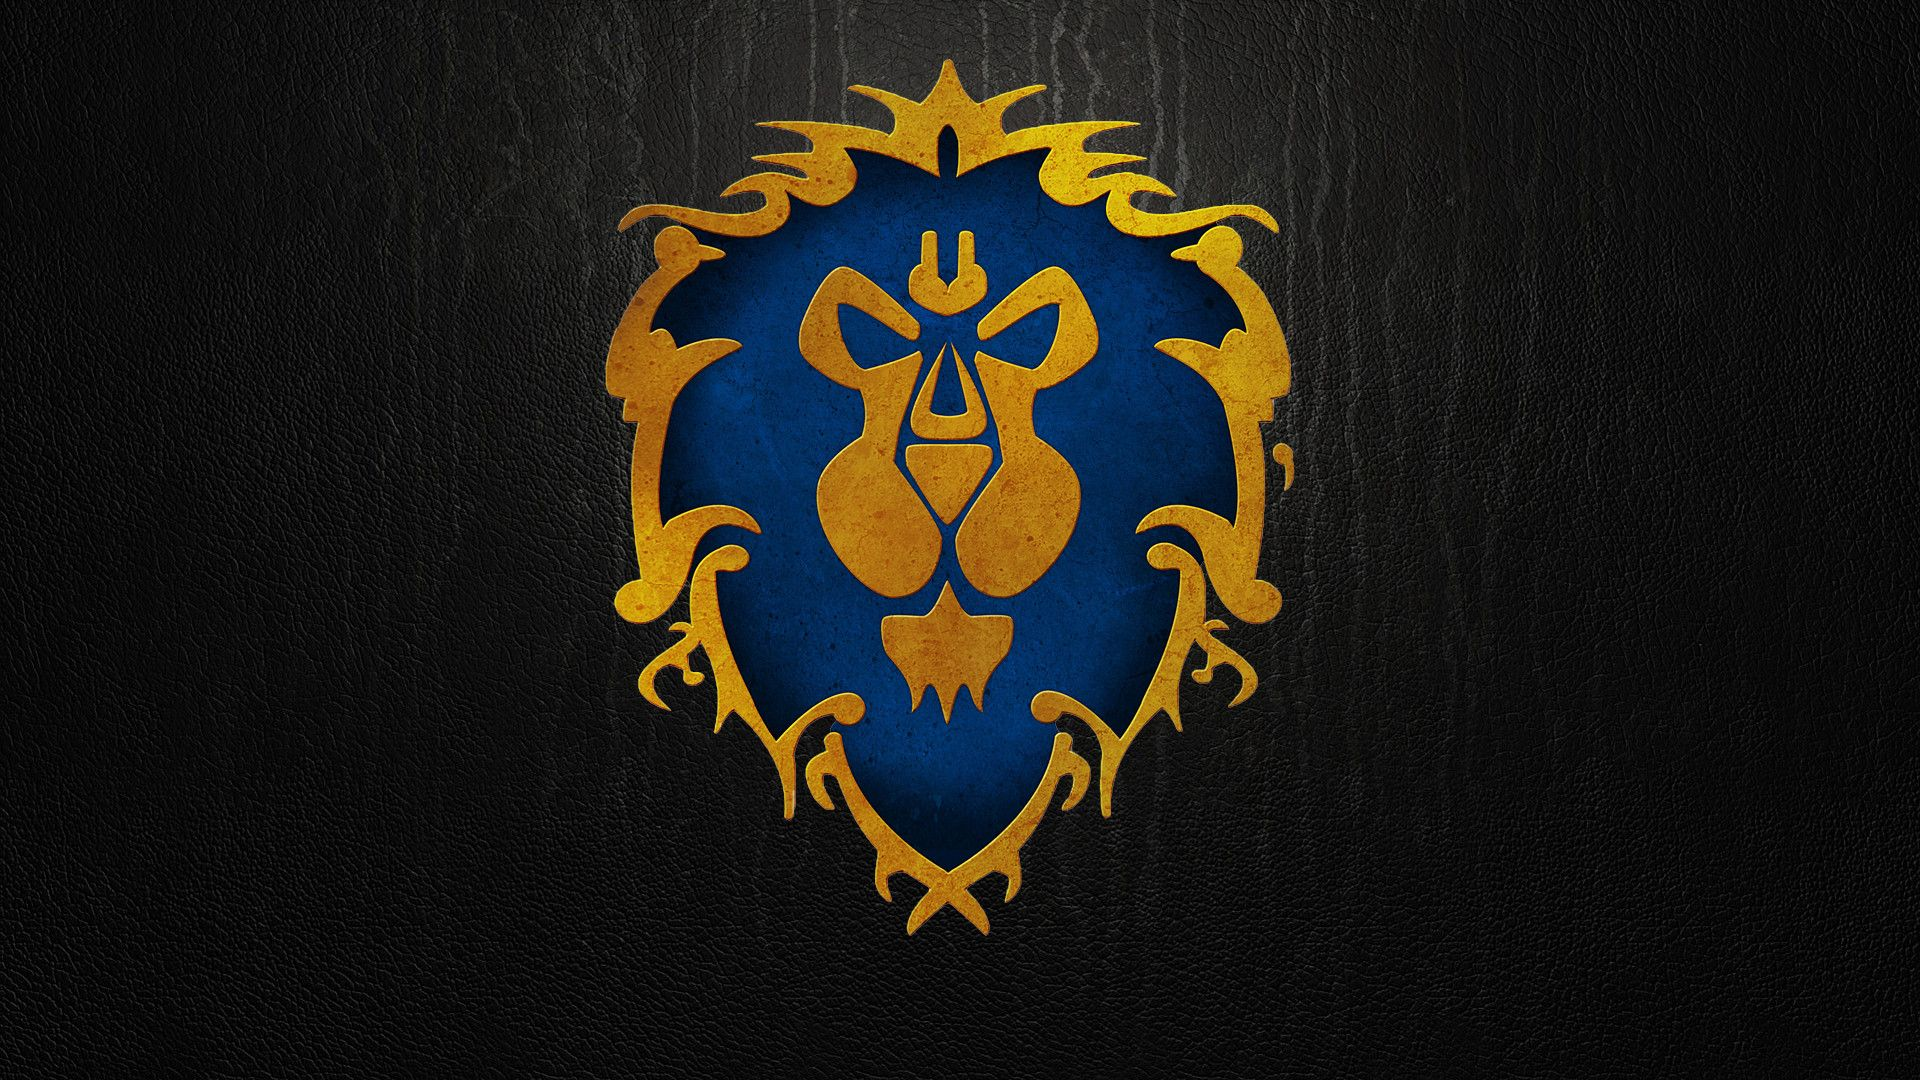 alliance warcraft wallpaper hd